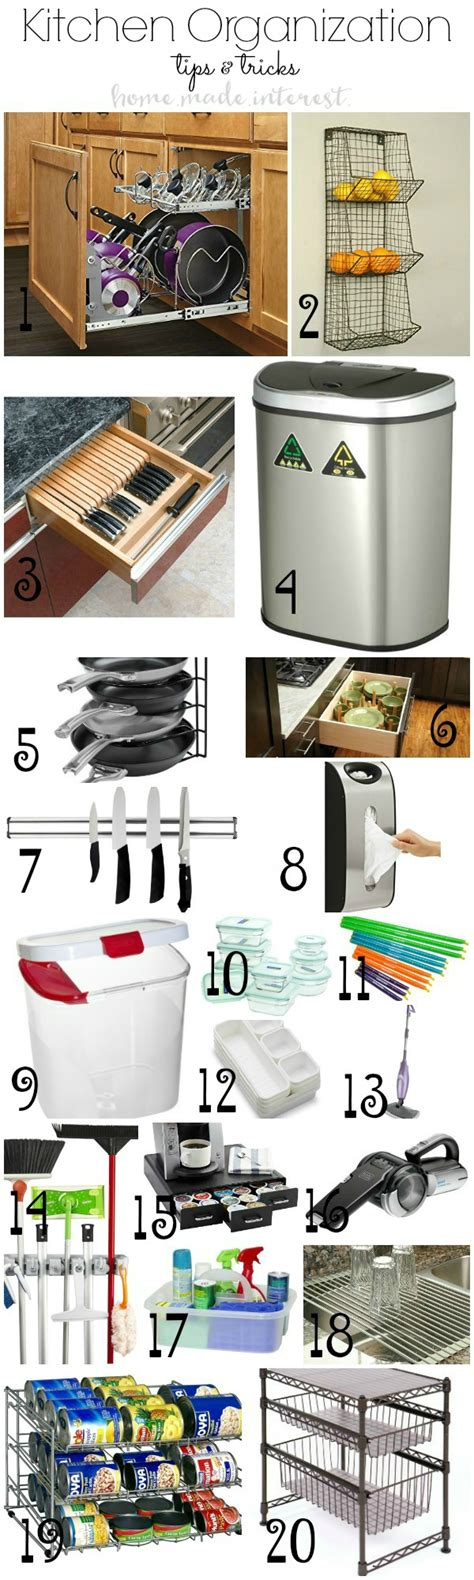 tips for organizing your kitchen easy tips to organize your kitchen home made interest 8537